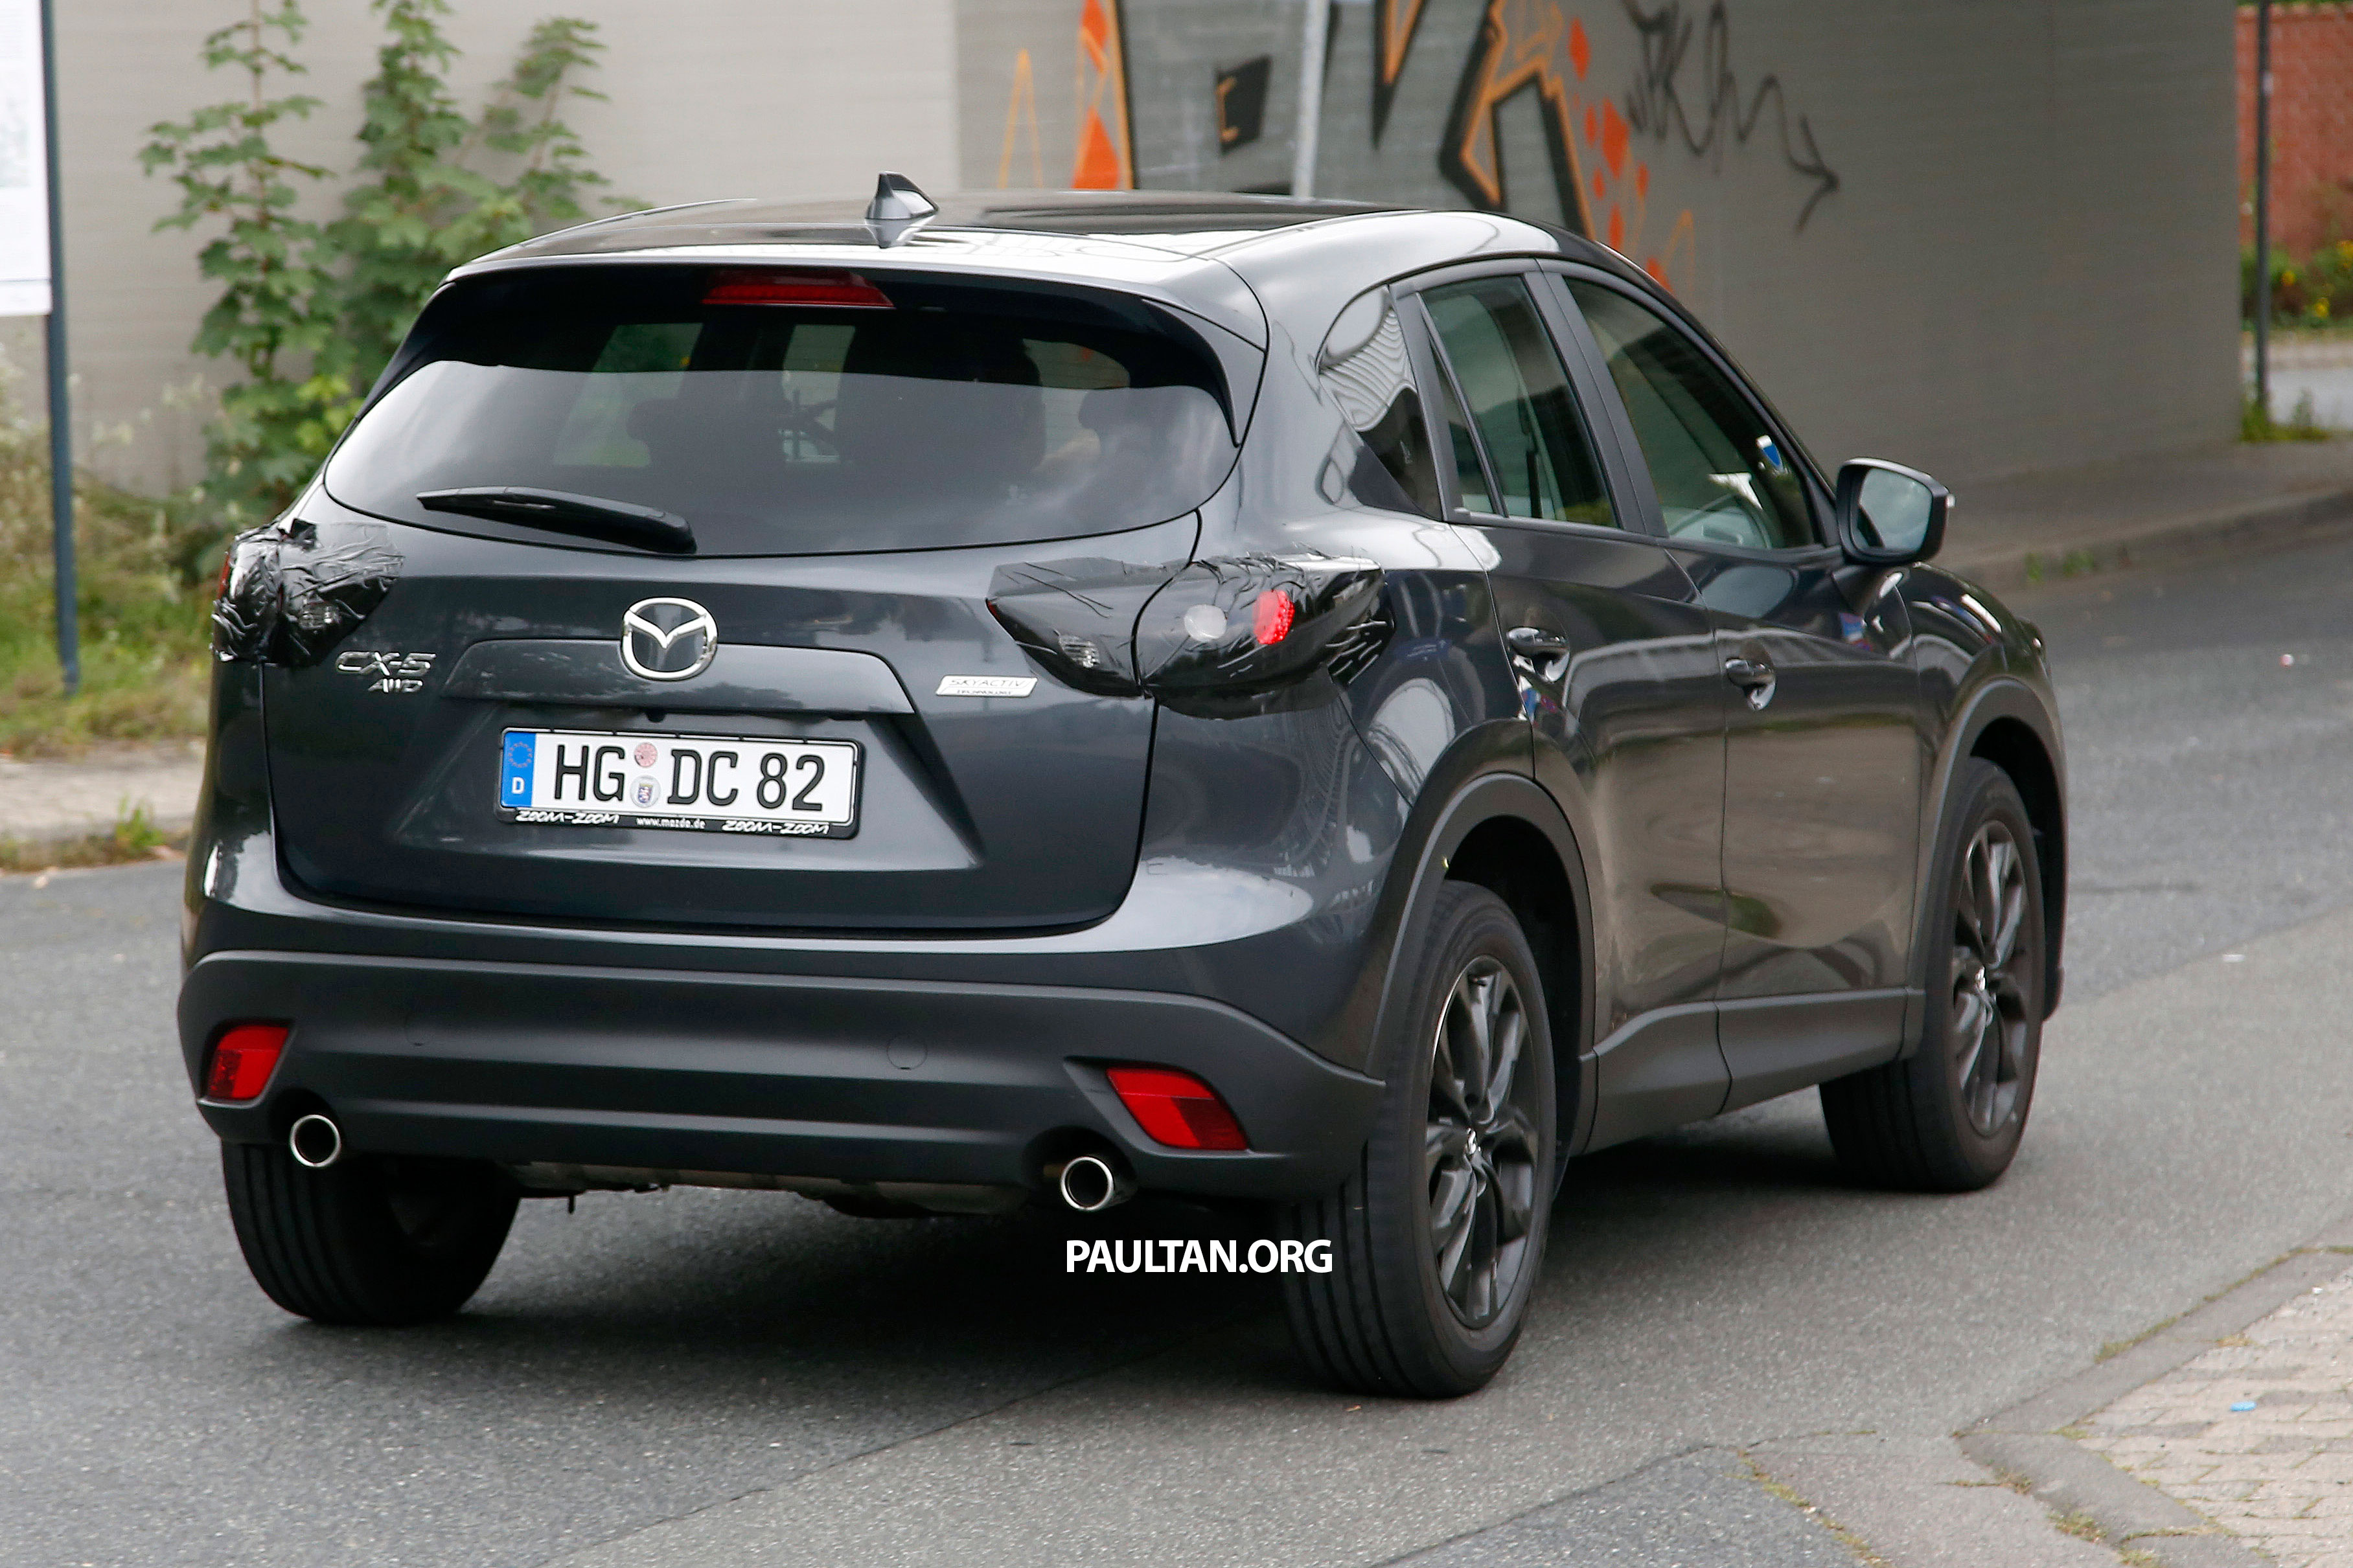 All New Mazda Cx 5 2018 >> SPYSHOTS: Mazda CX-5 facelift – new grille and lamps Image 271085